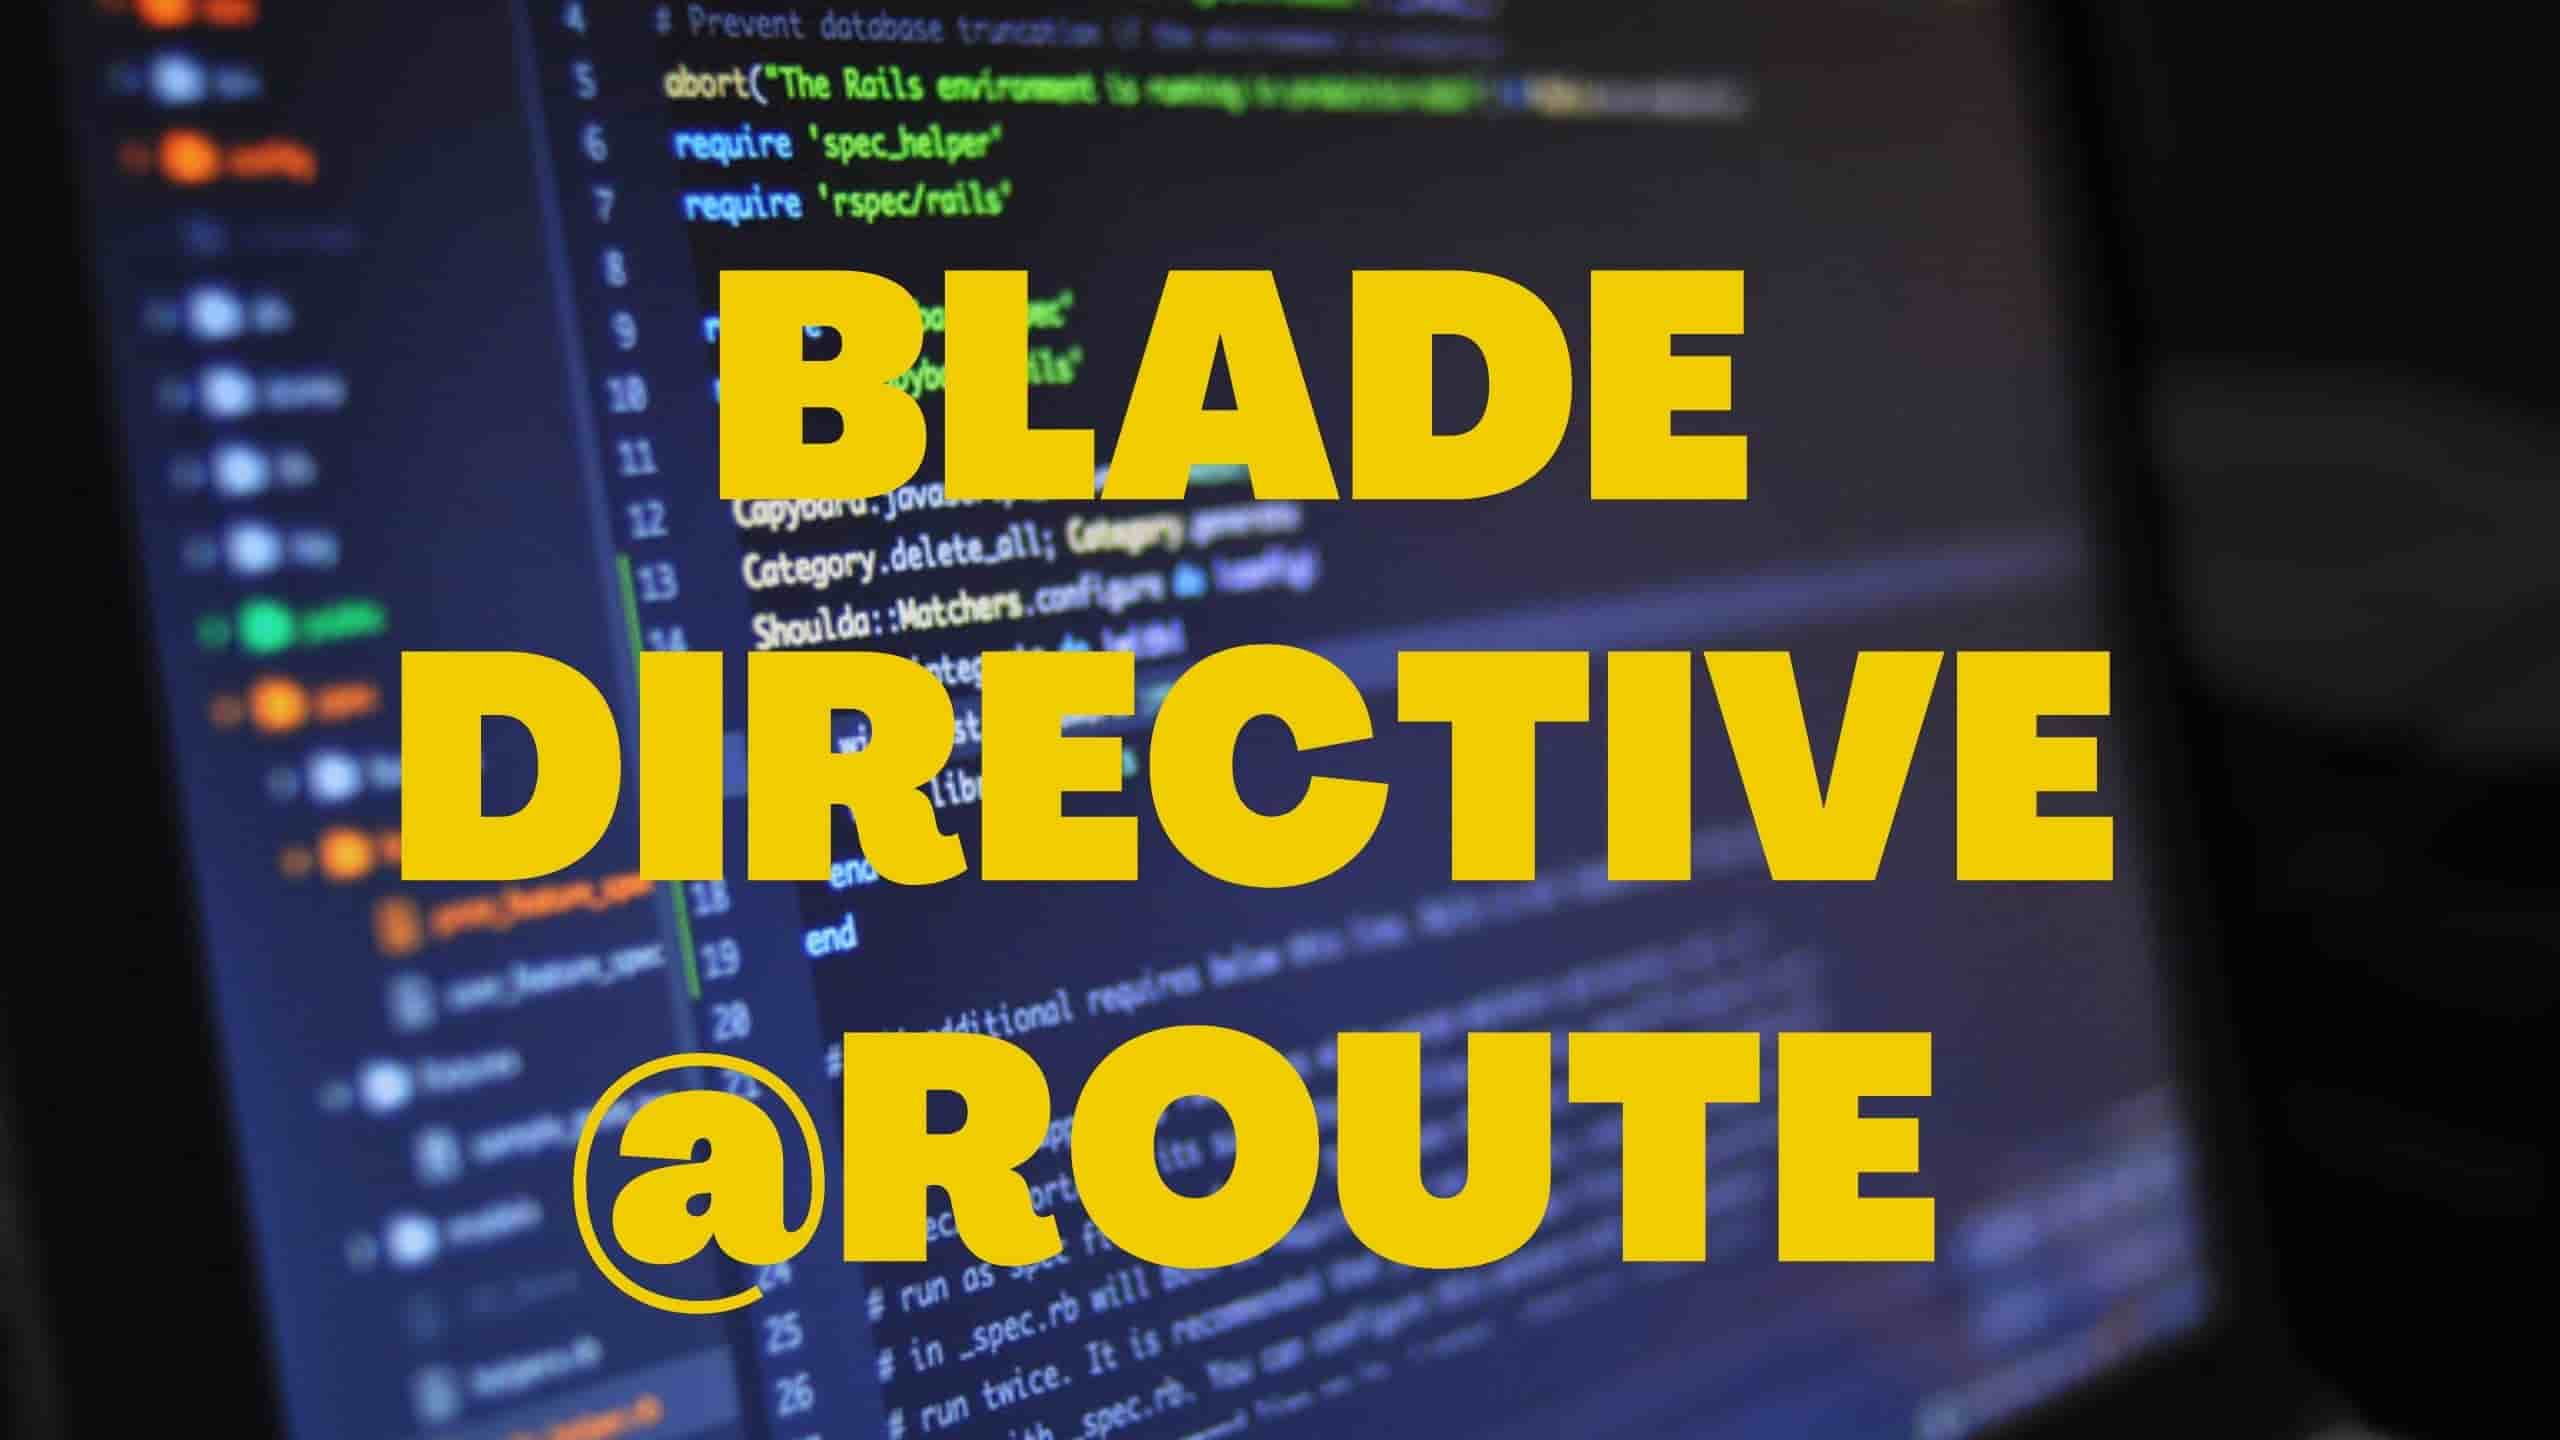 Using @route Instead Of route in Laravel Blade